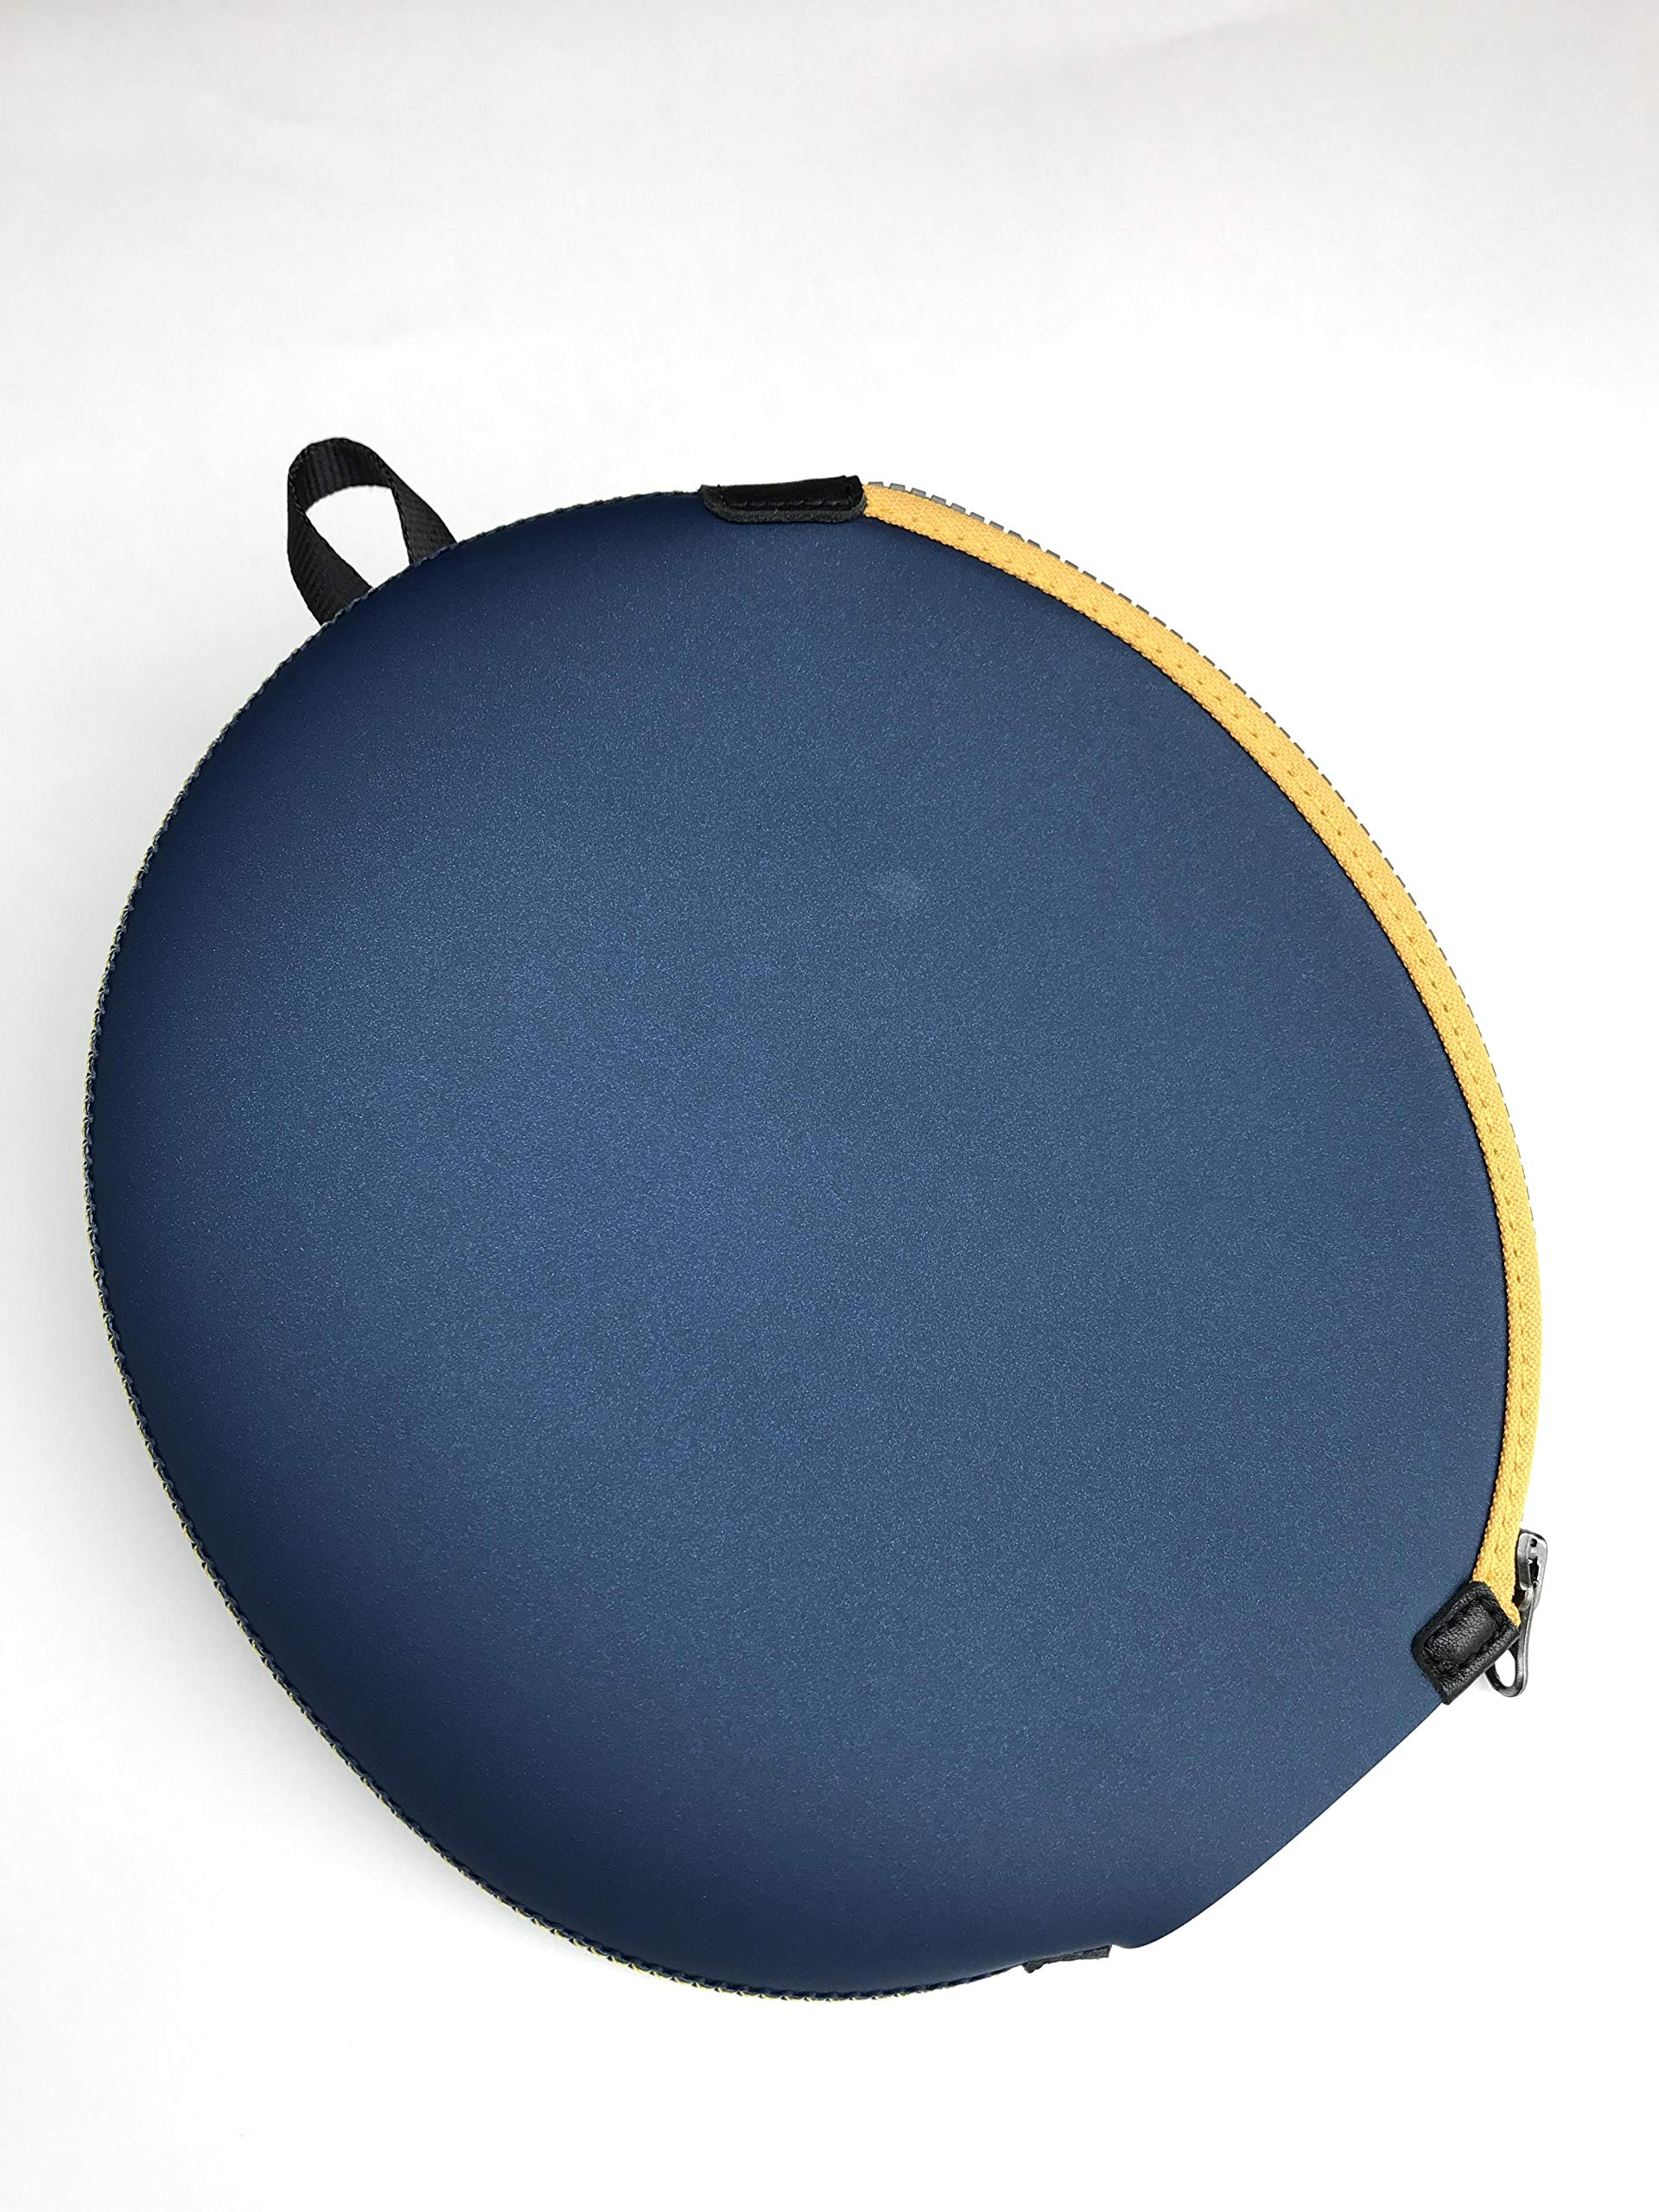 ONEJOY Ping Pong,Table Tennis Racquet Bag,Sleeves with Zipper AJ60,Loop to Hook,19cm x 17cm, for 1 Racquet/Racket/Paddle. by ONEJOY (Image #6)